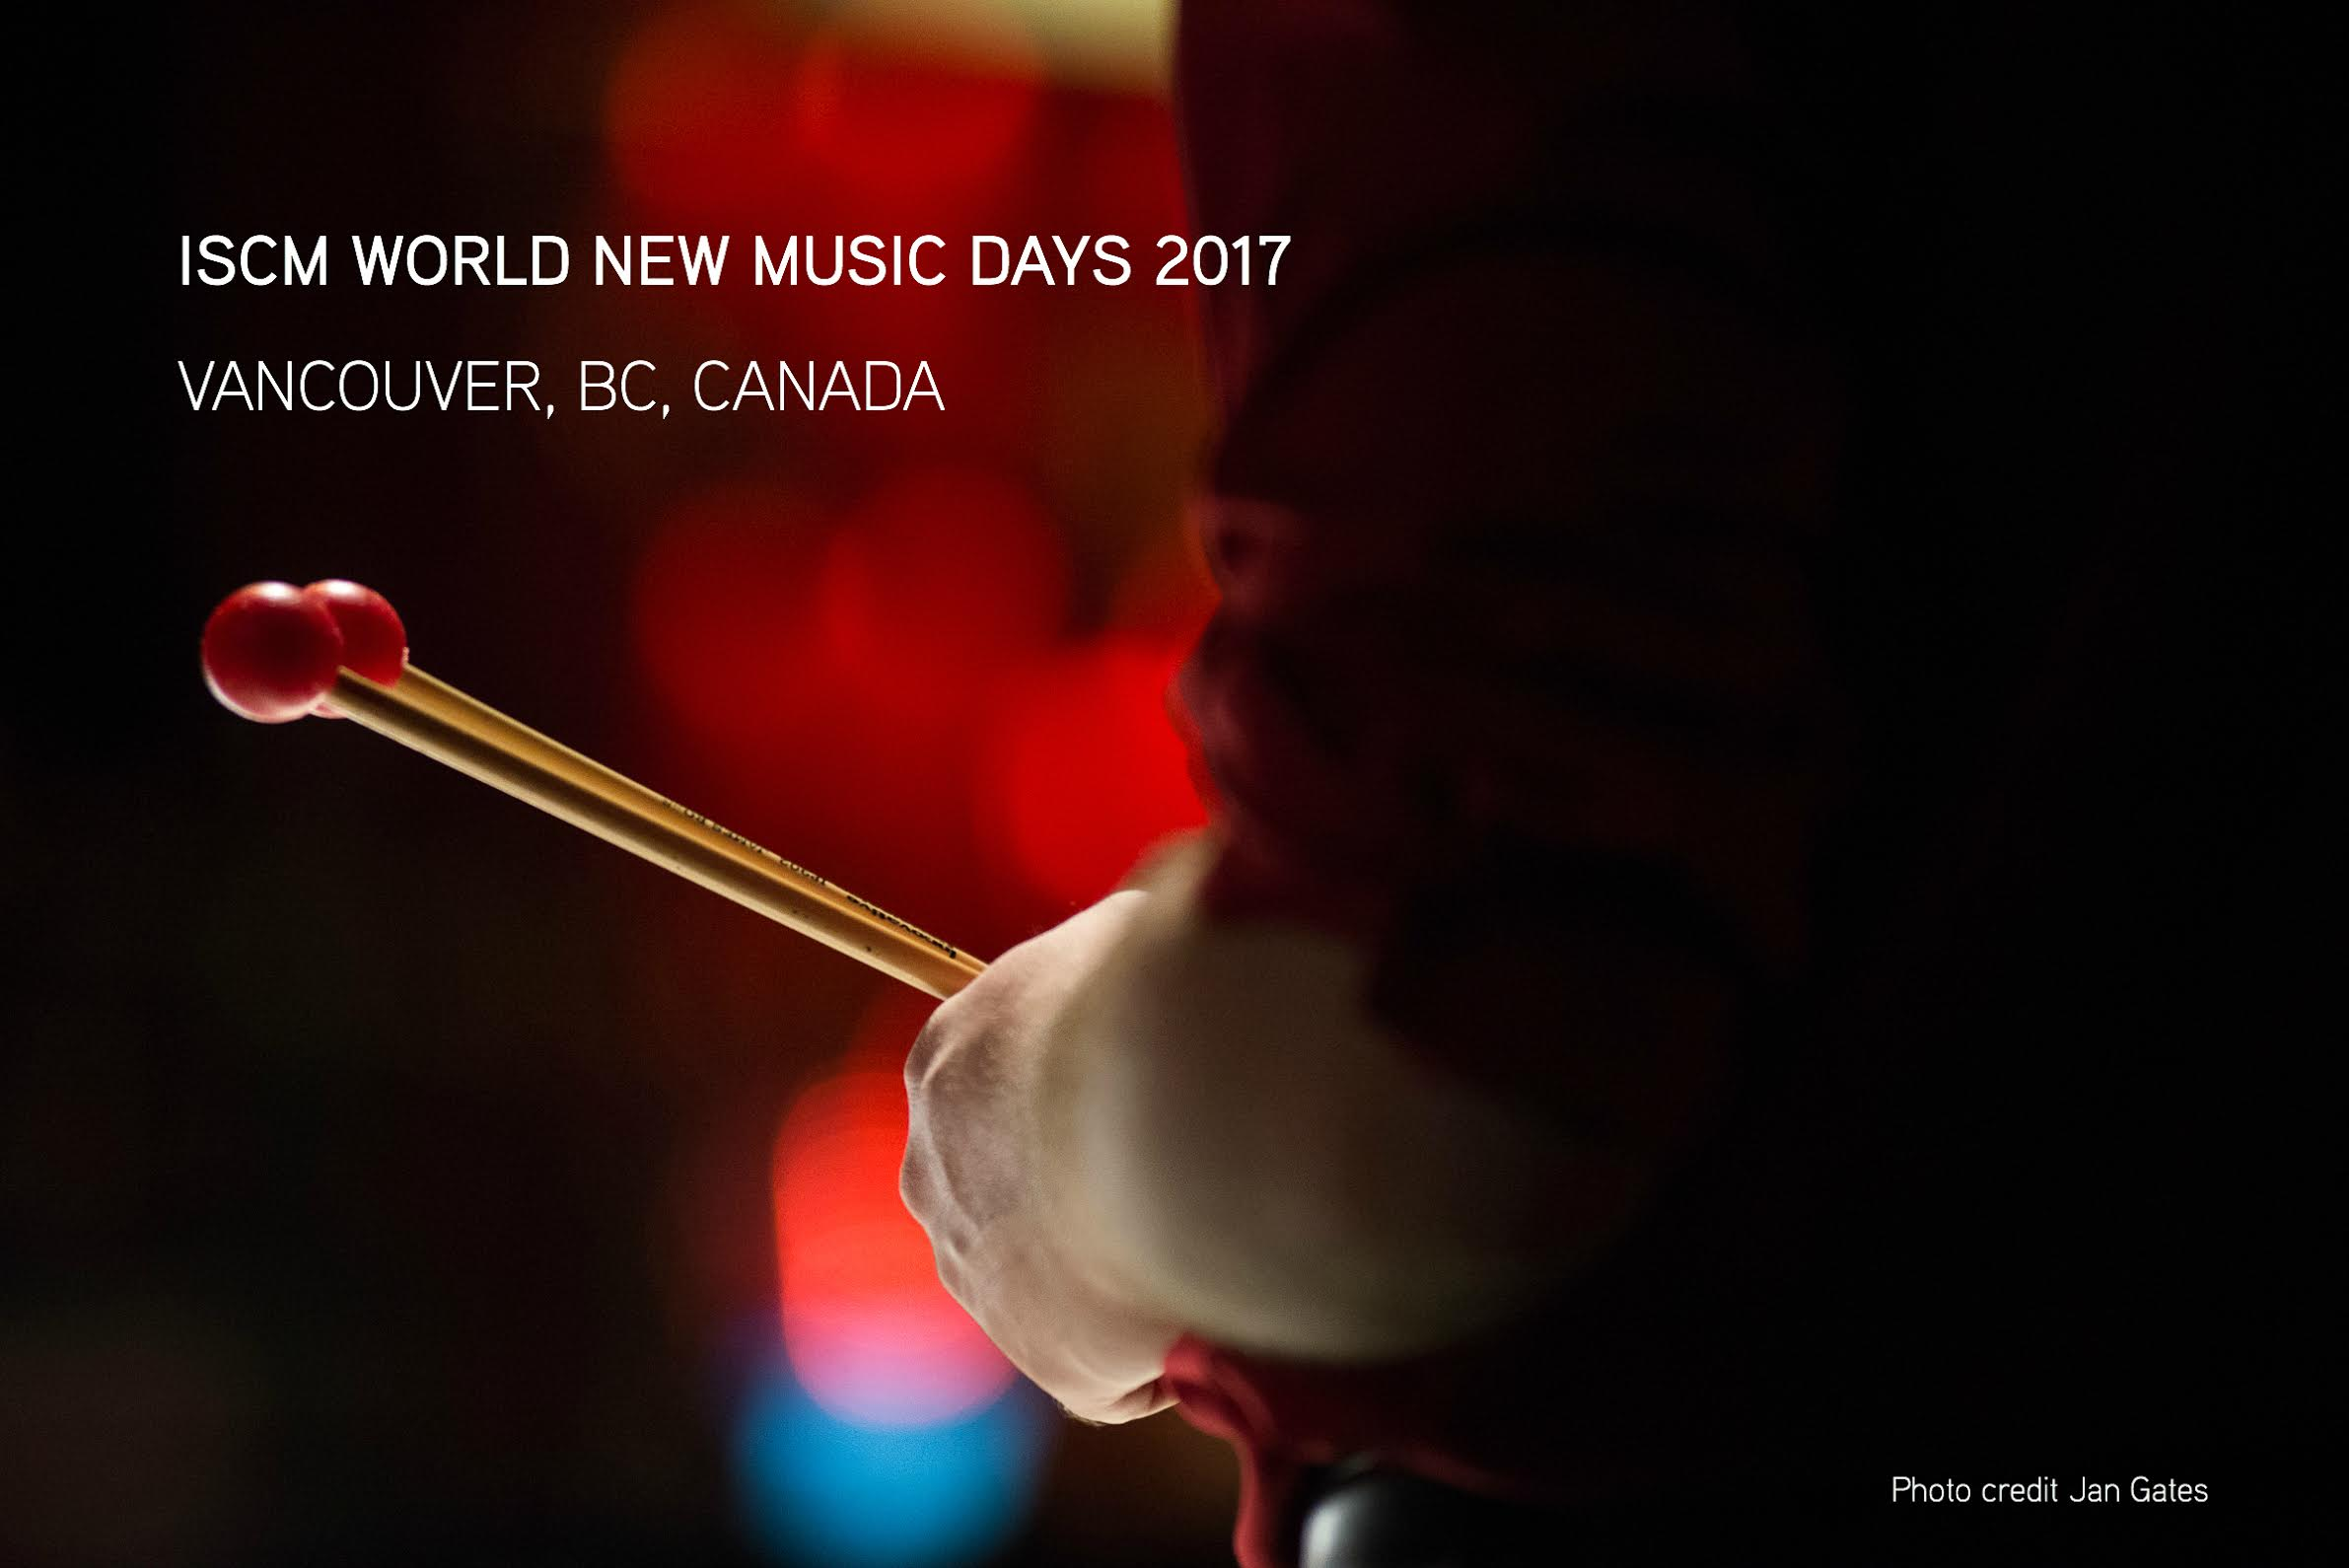 Join us in Vancouver for ISCM World New Music Days 2017! Presented by the Canadian League of Composers and Music on Main.